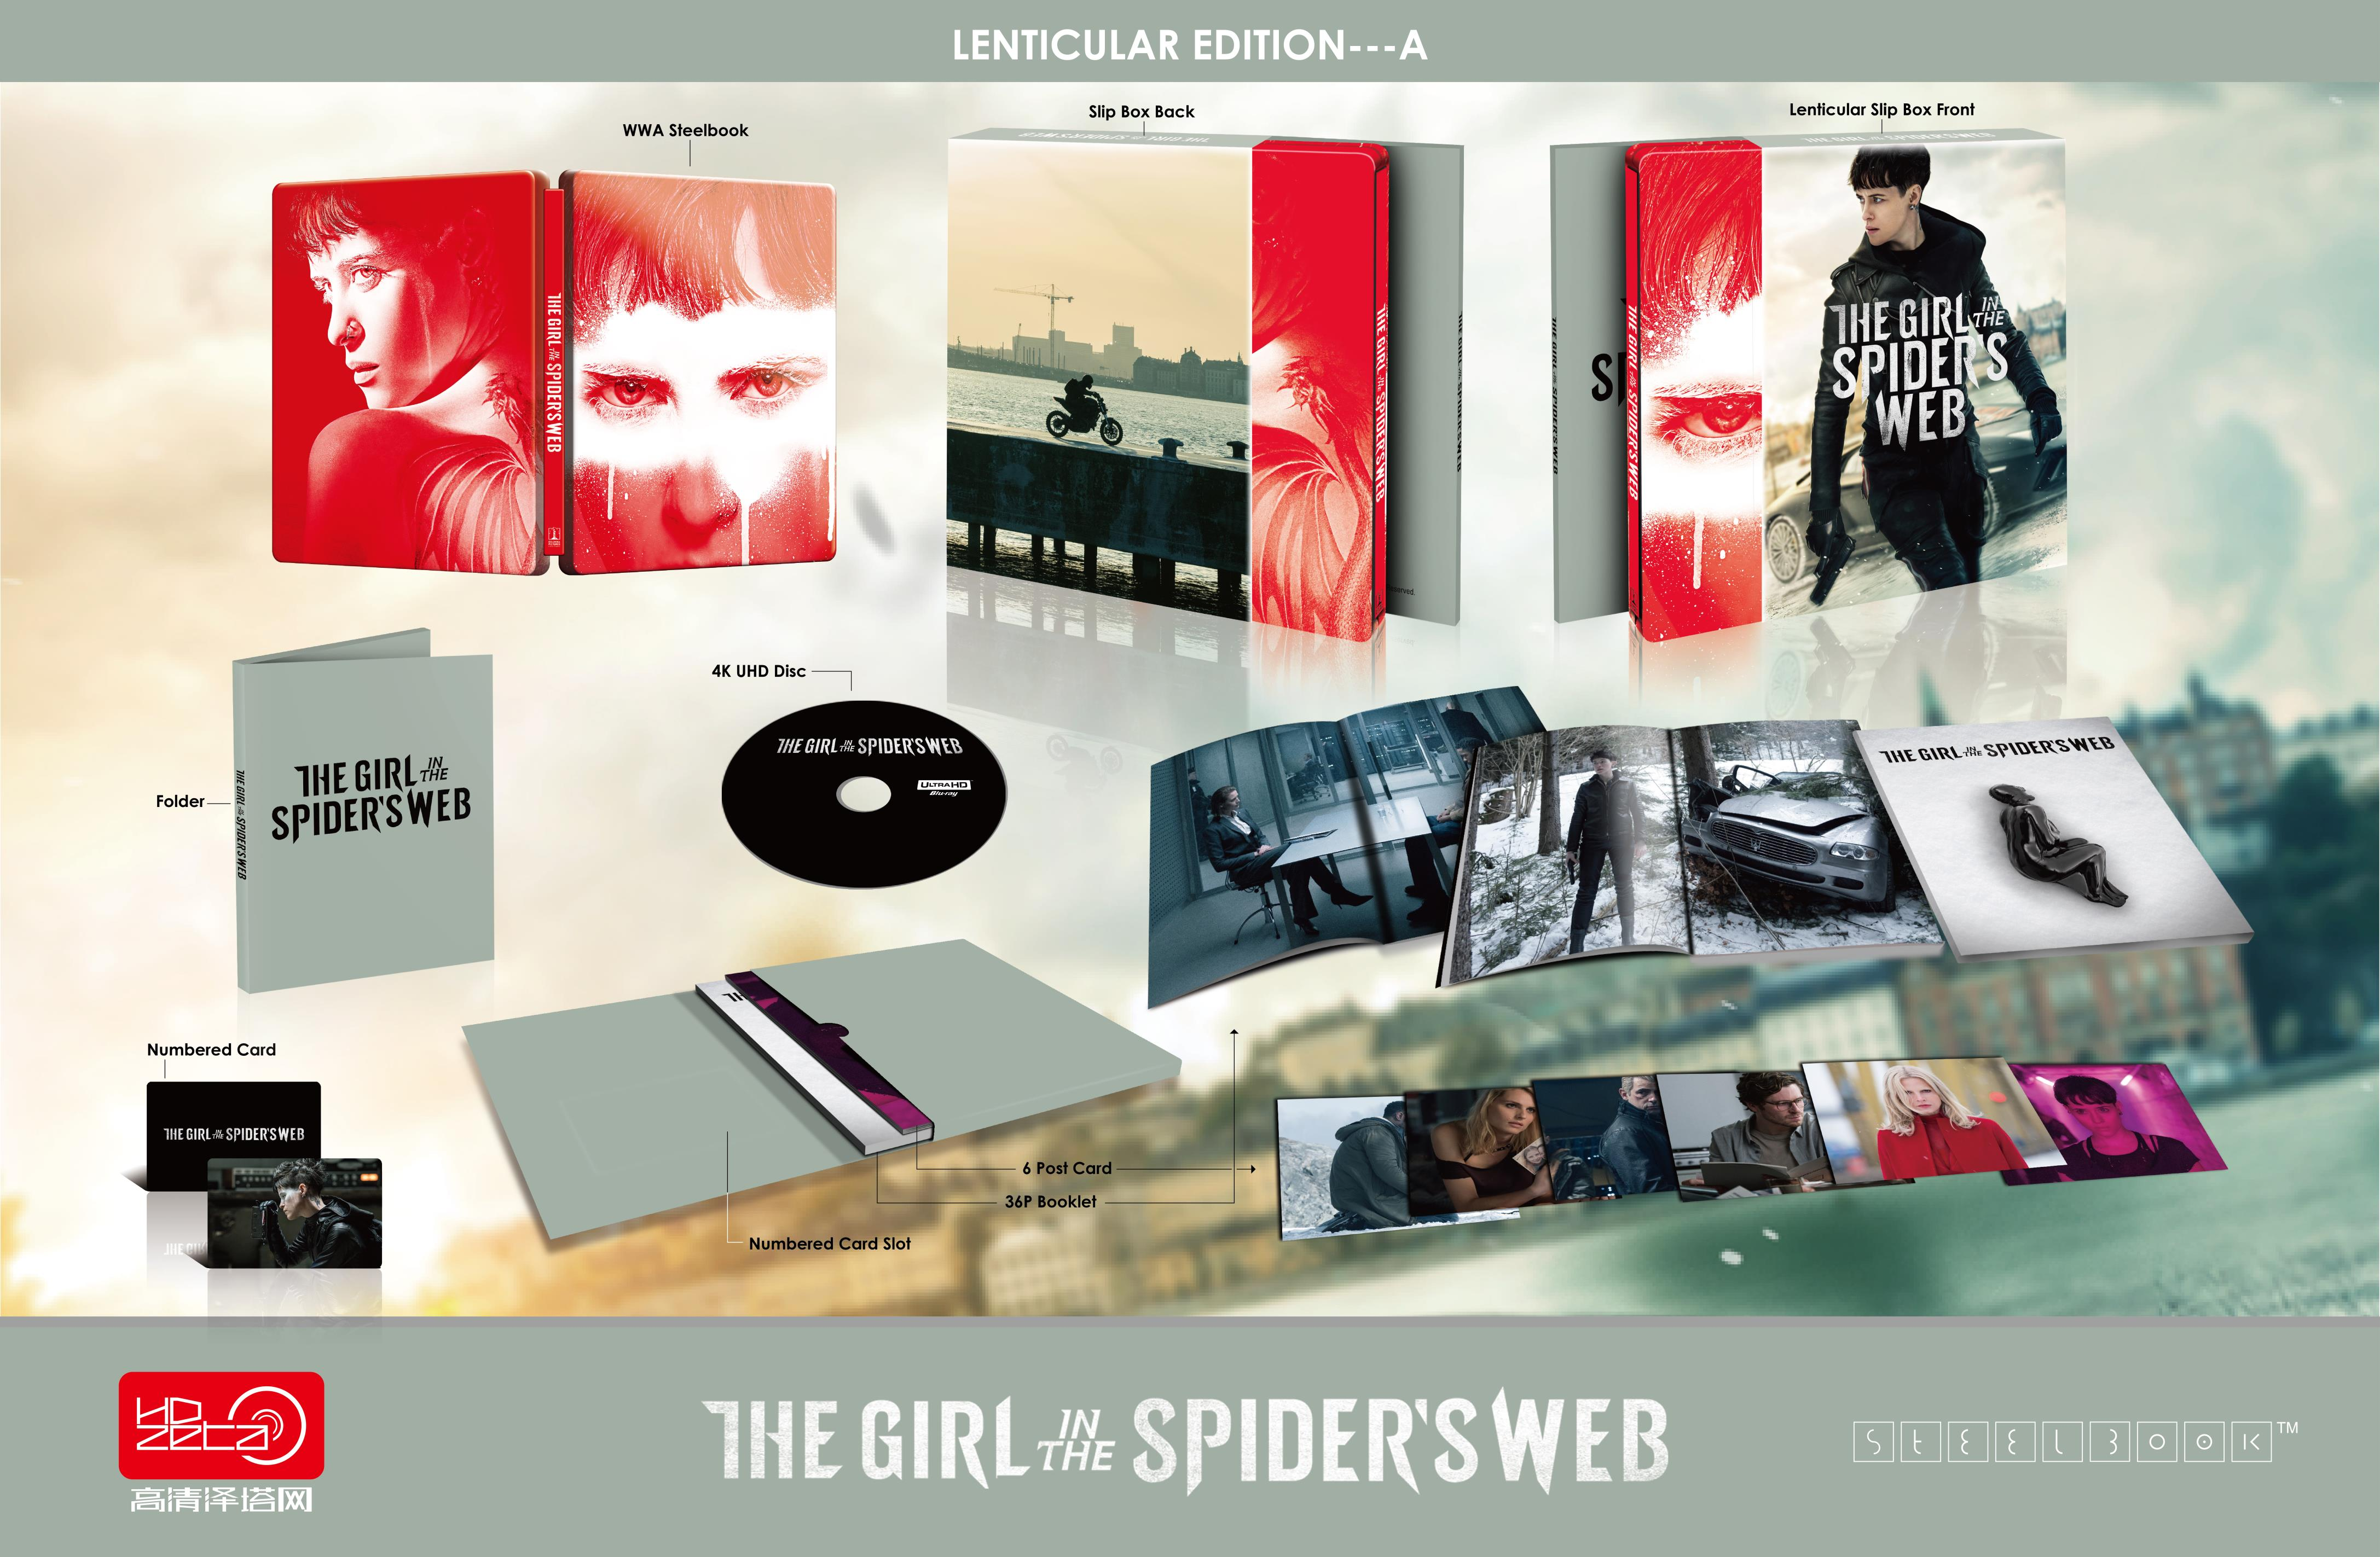 The Girl in the Spider' Web(4K)HDzeta Silver Label Lenticuar---A